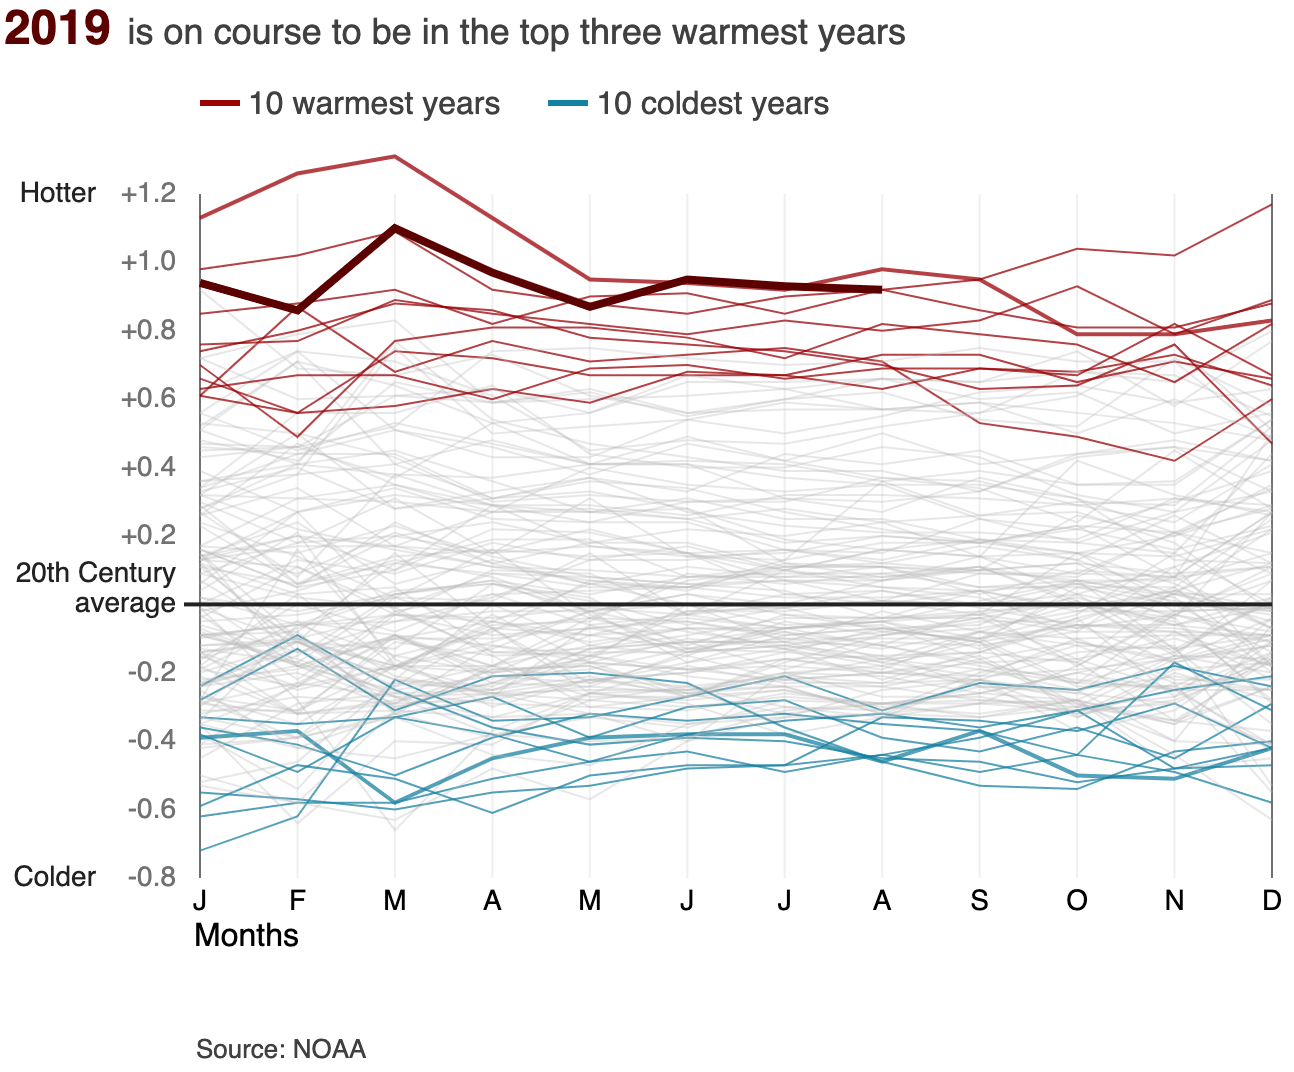 Animated chart showing that most of the coldest 10 years compared to the 20th century average were in the early 1900s while the warmest years have all been since 2000 with 2018 on course to be the fourth warmest year on record